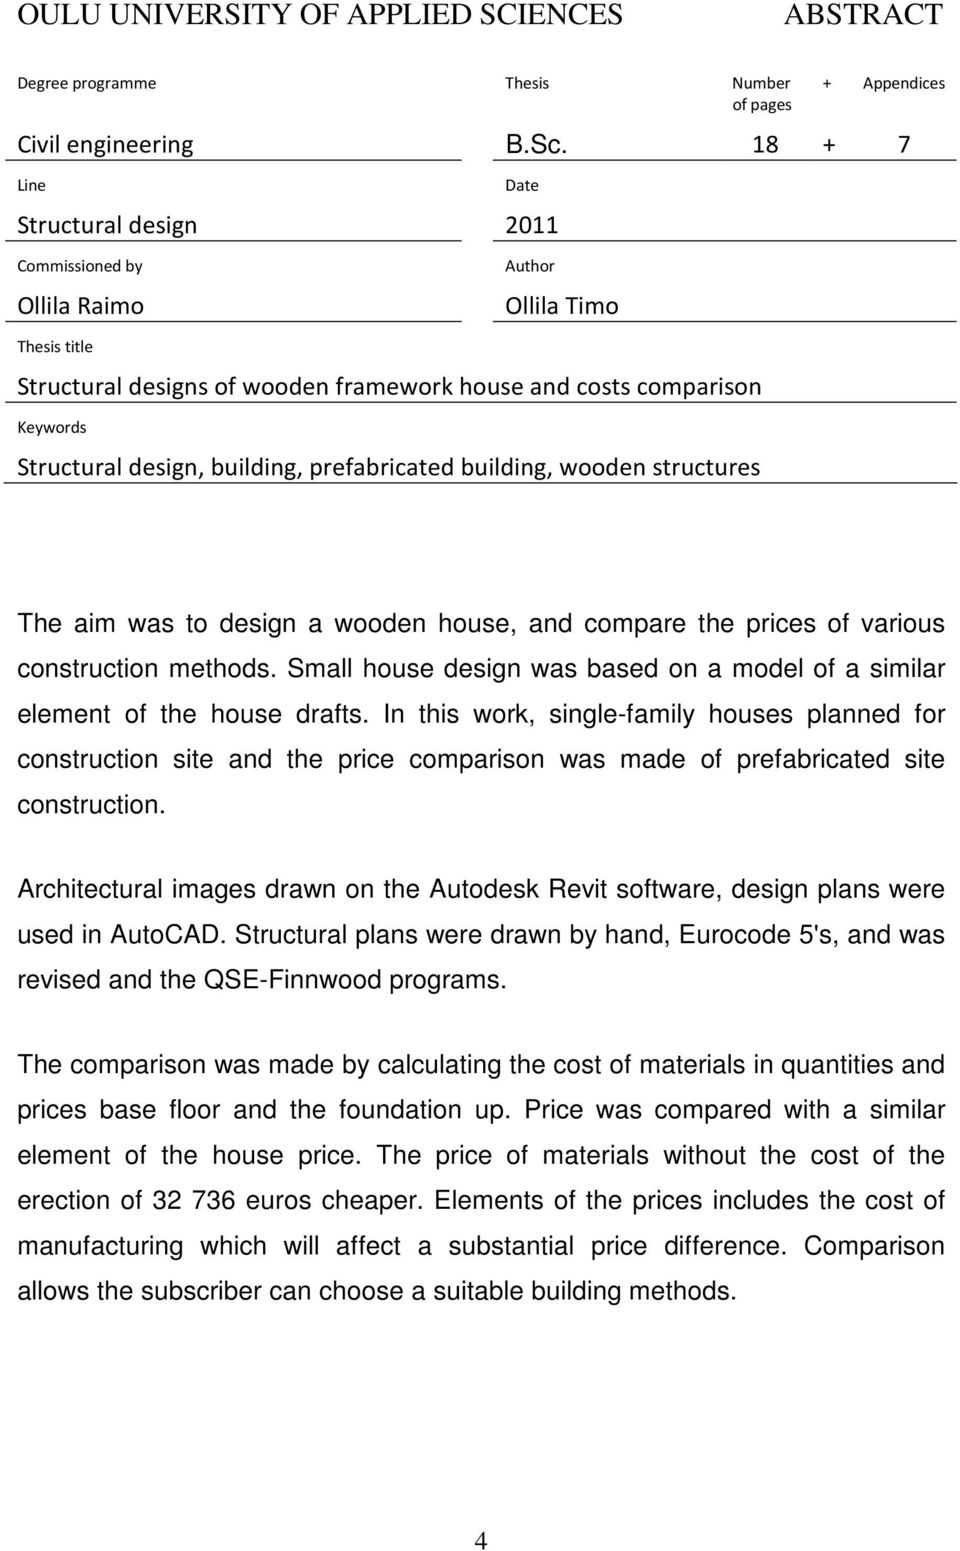 preabricate builing, wooen structures The aim was to esign a wooen house, an compare the prices o various construction methos.